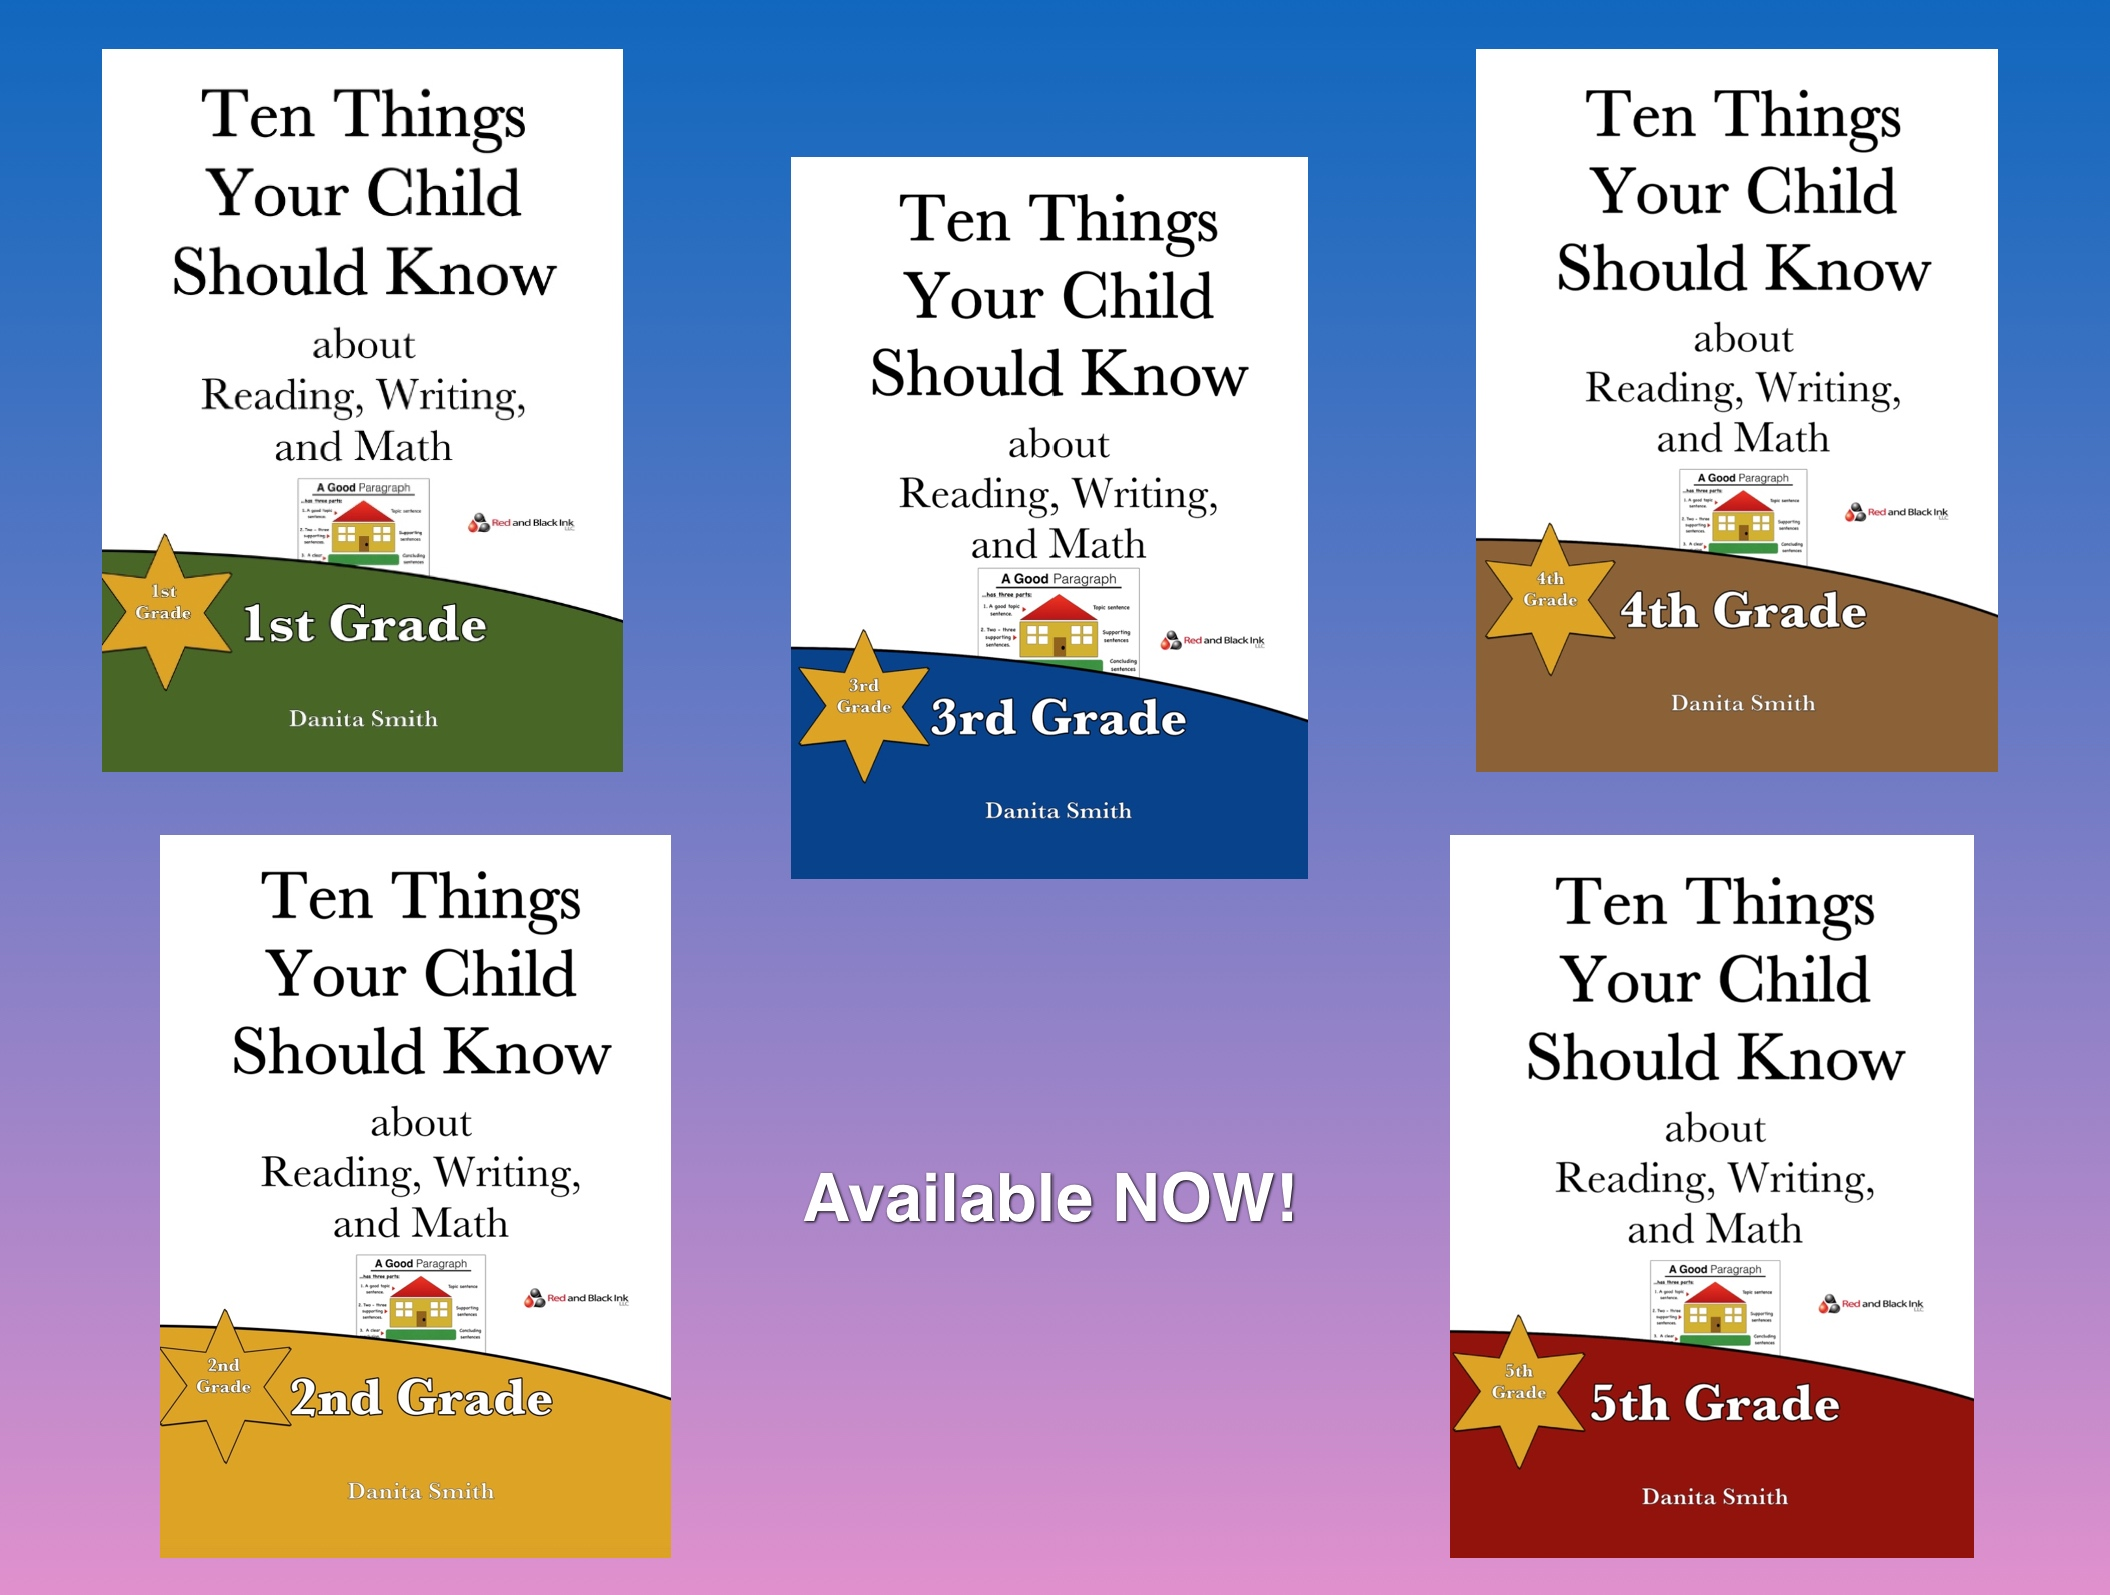 Ten Things Your Child Should Know Visuals